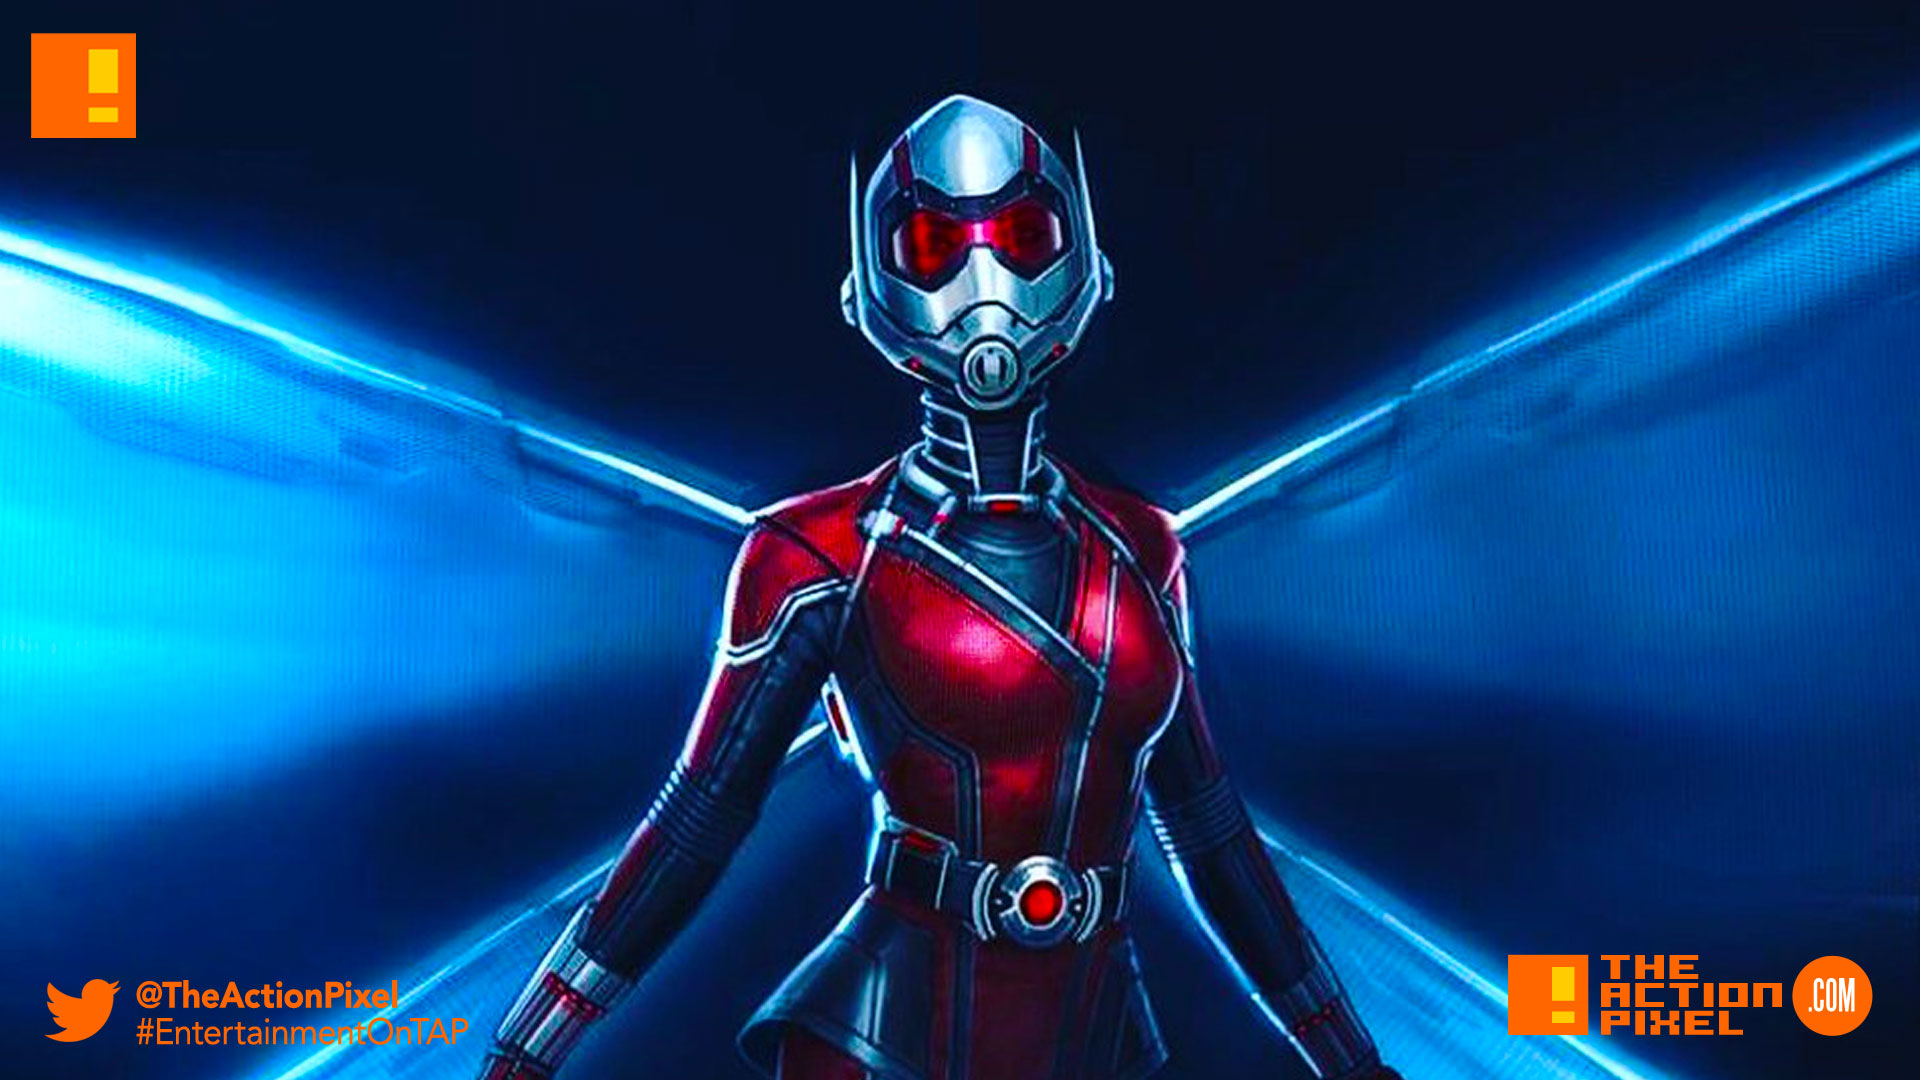 ant-man and the wasp, ant-man, ant man, casting, marvel, the action pixel, entertainment on tap,